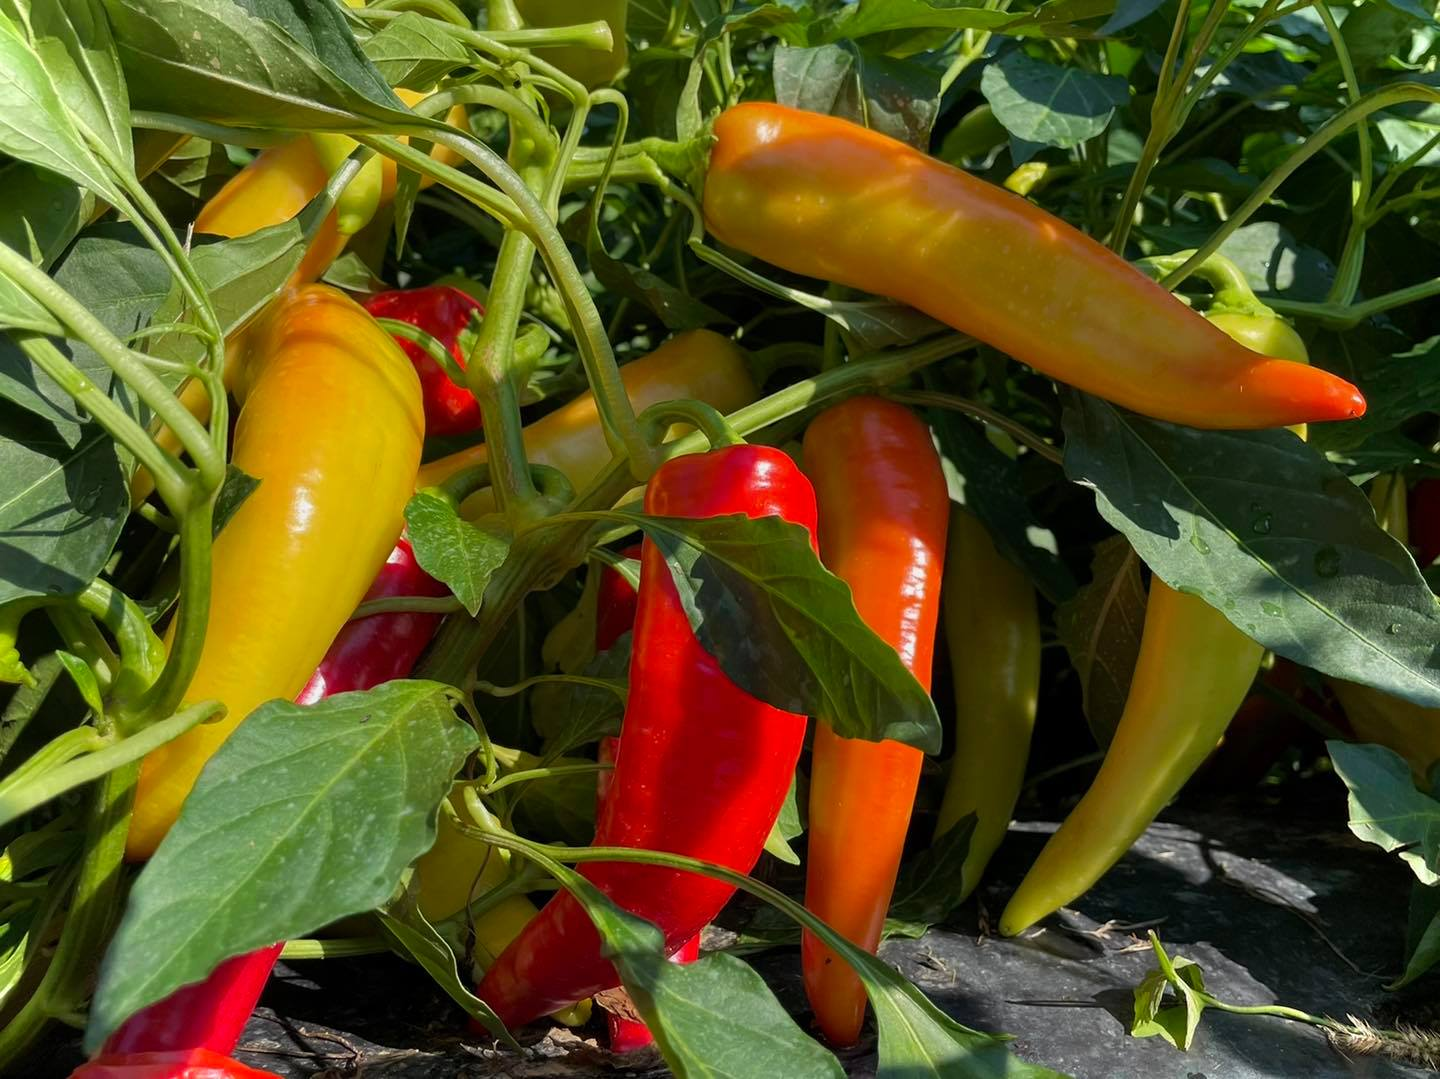 Grims Orchard & Family Farm pick your own peppers and vegetables